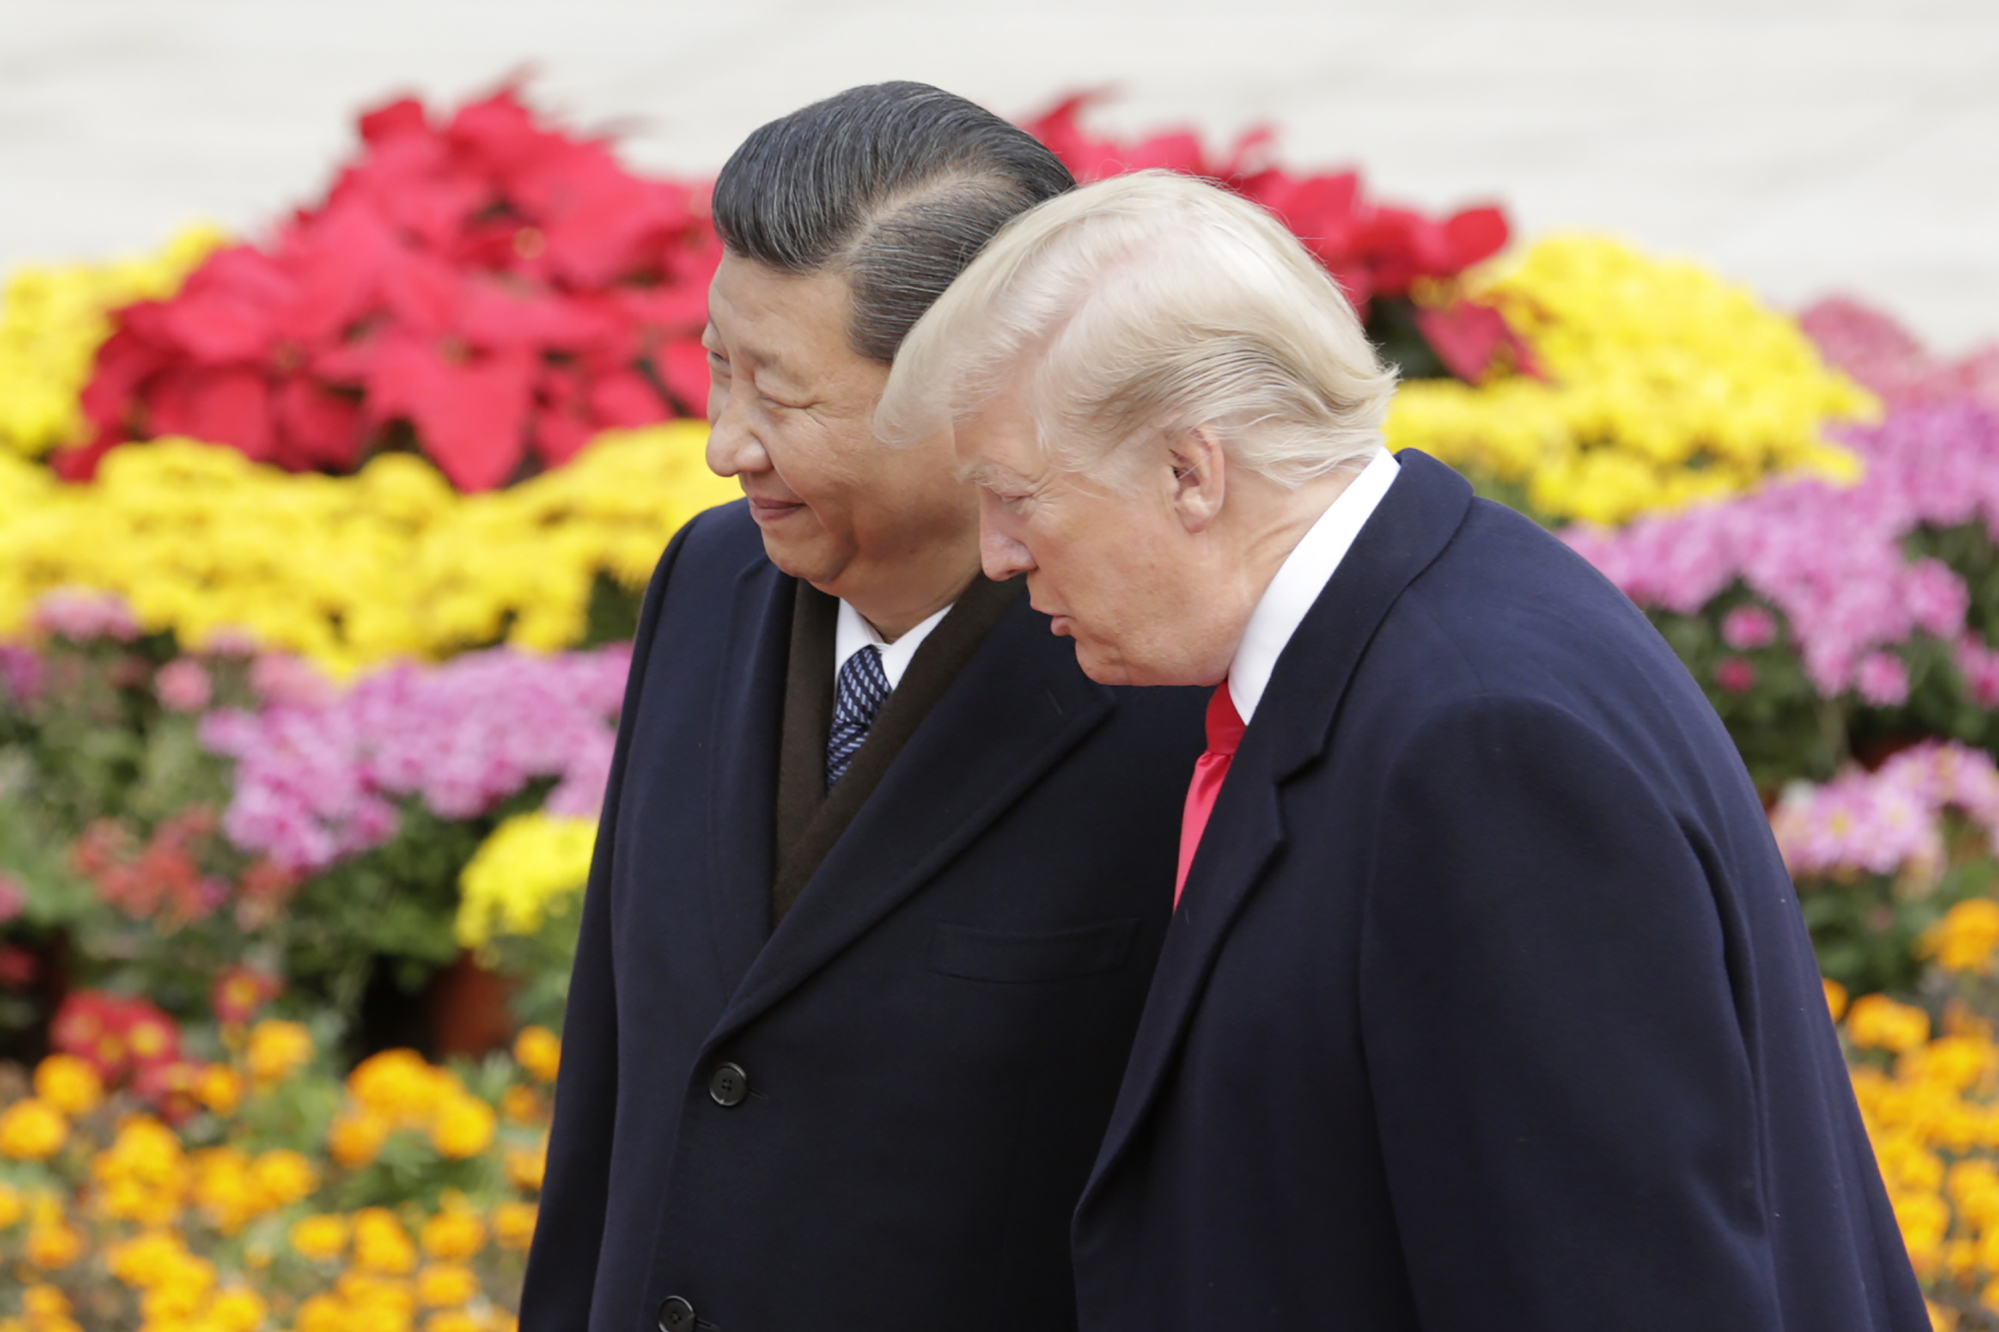 U.S. President Donald Trump, right, speaks with Xi Jinping, China's president, during a welcome ceremony outside the Great Hall of the People in Beijing, China, on Thursday, Nov. 9, 2017.